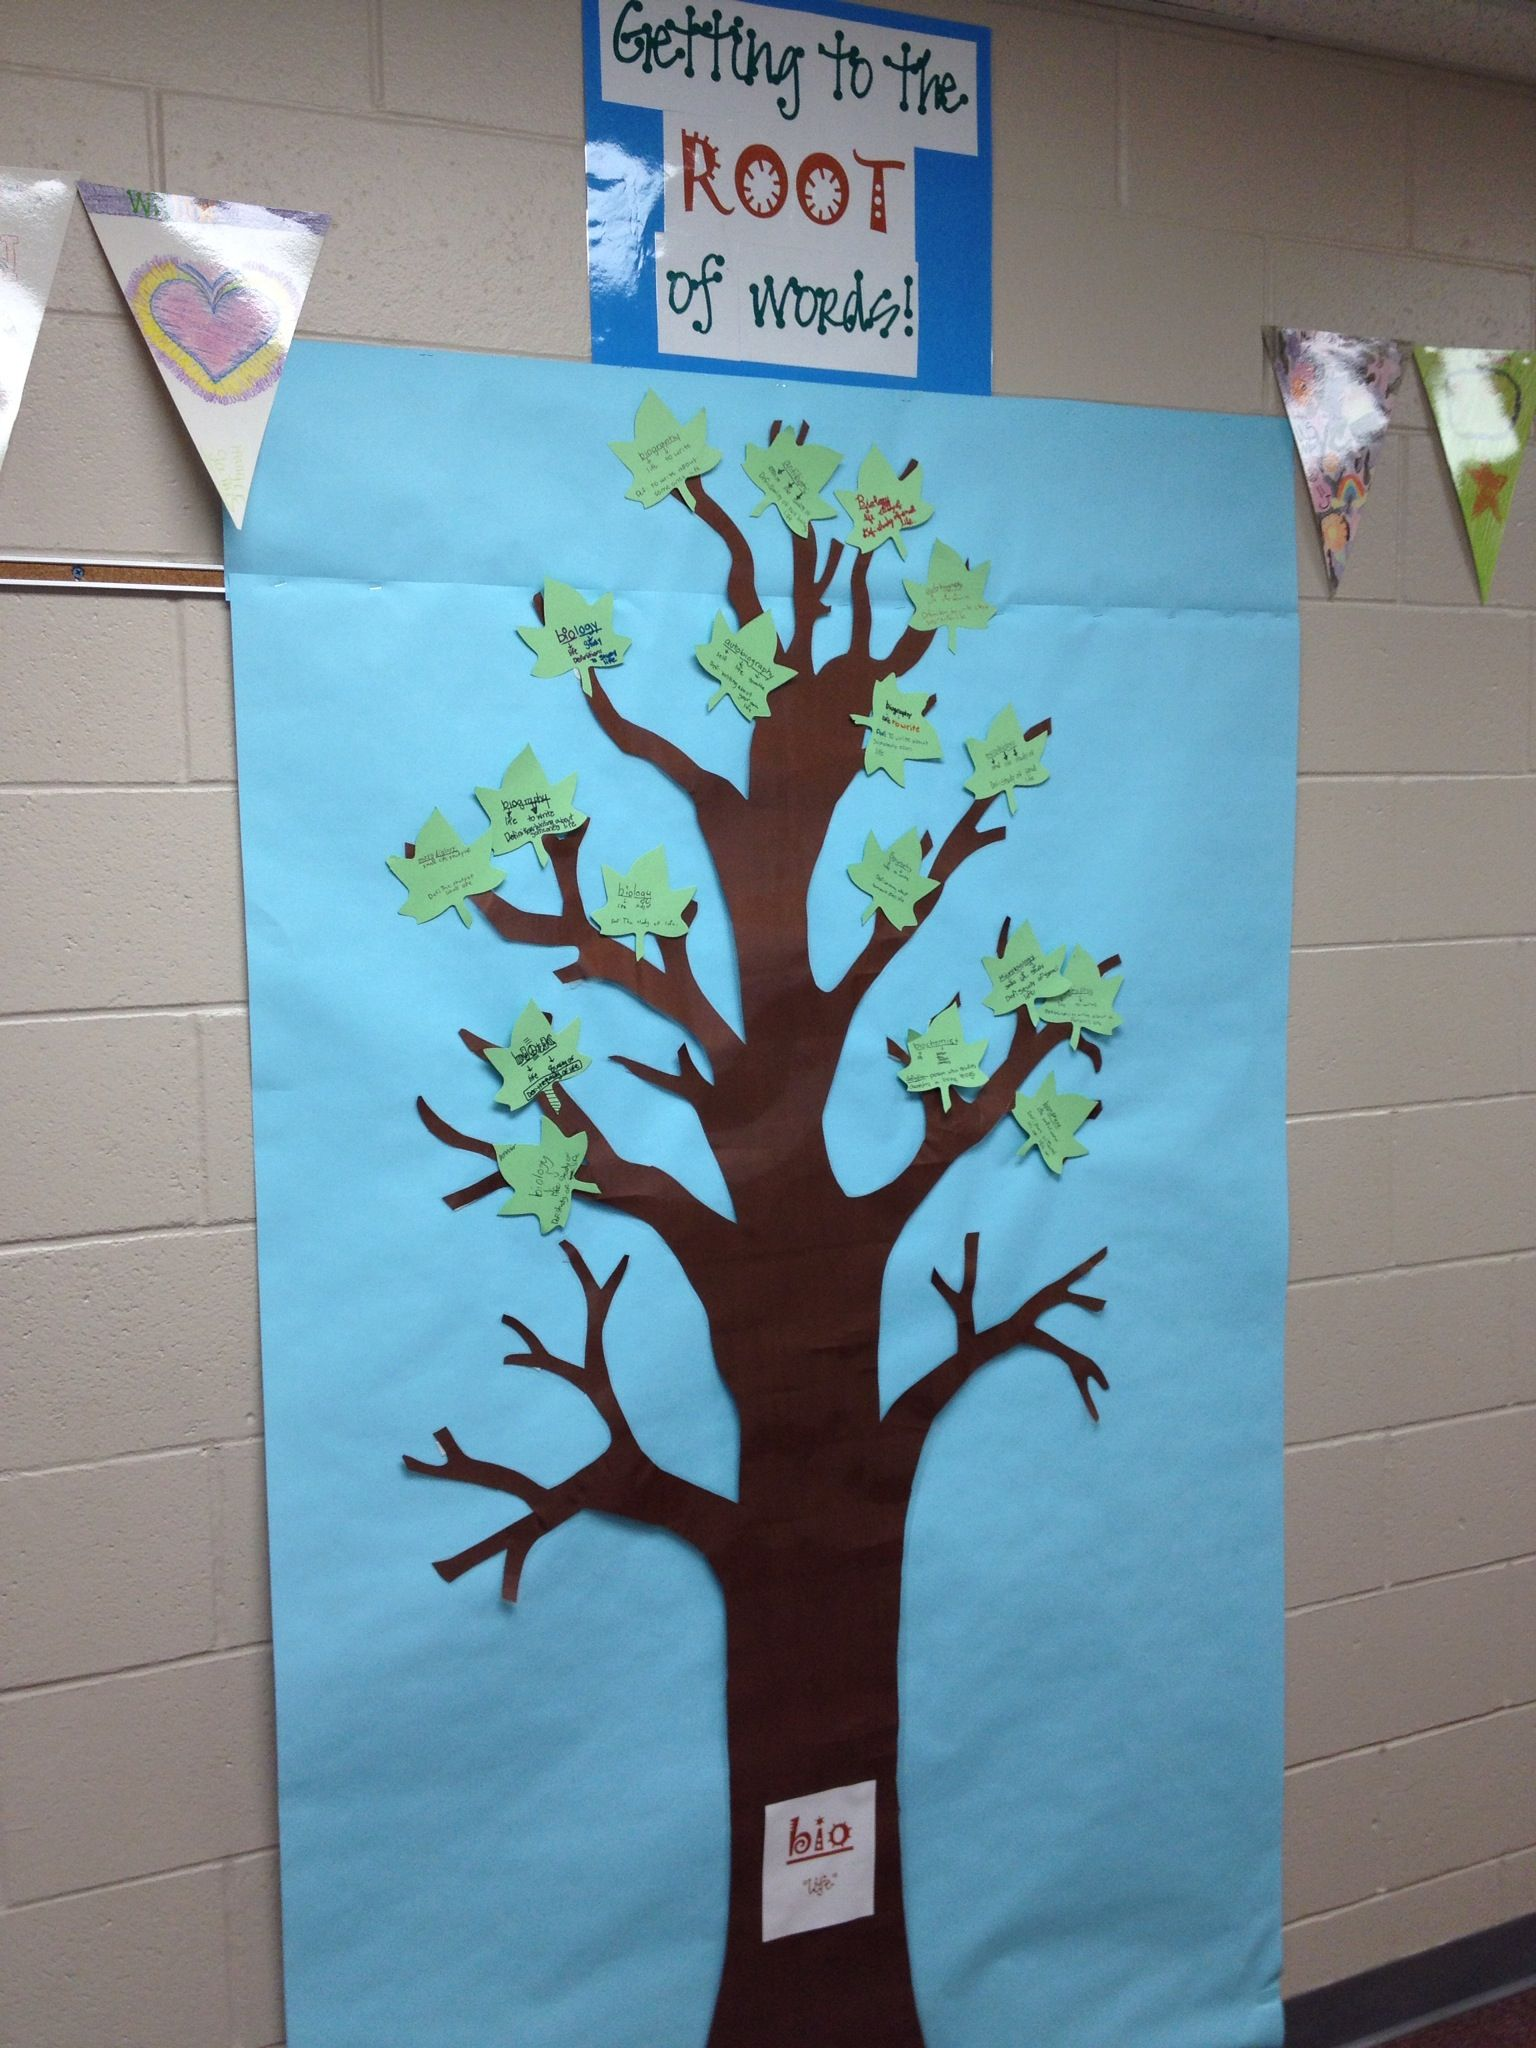 """Getting to the root of words"". Word study tree"